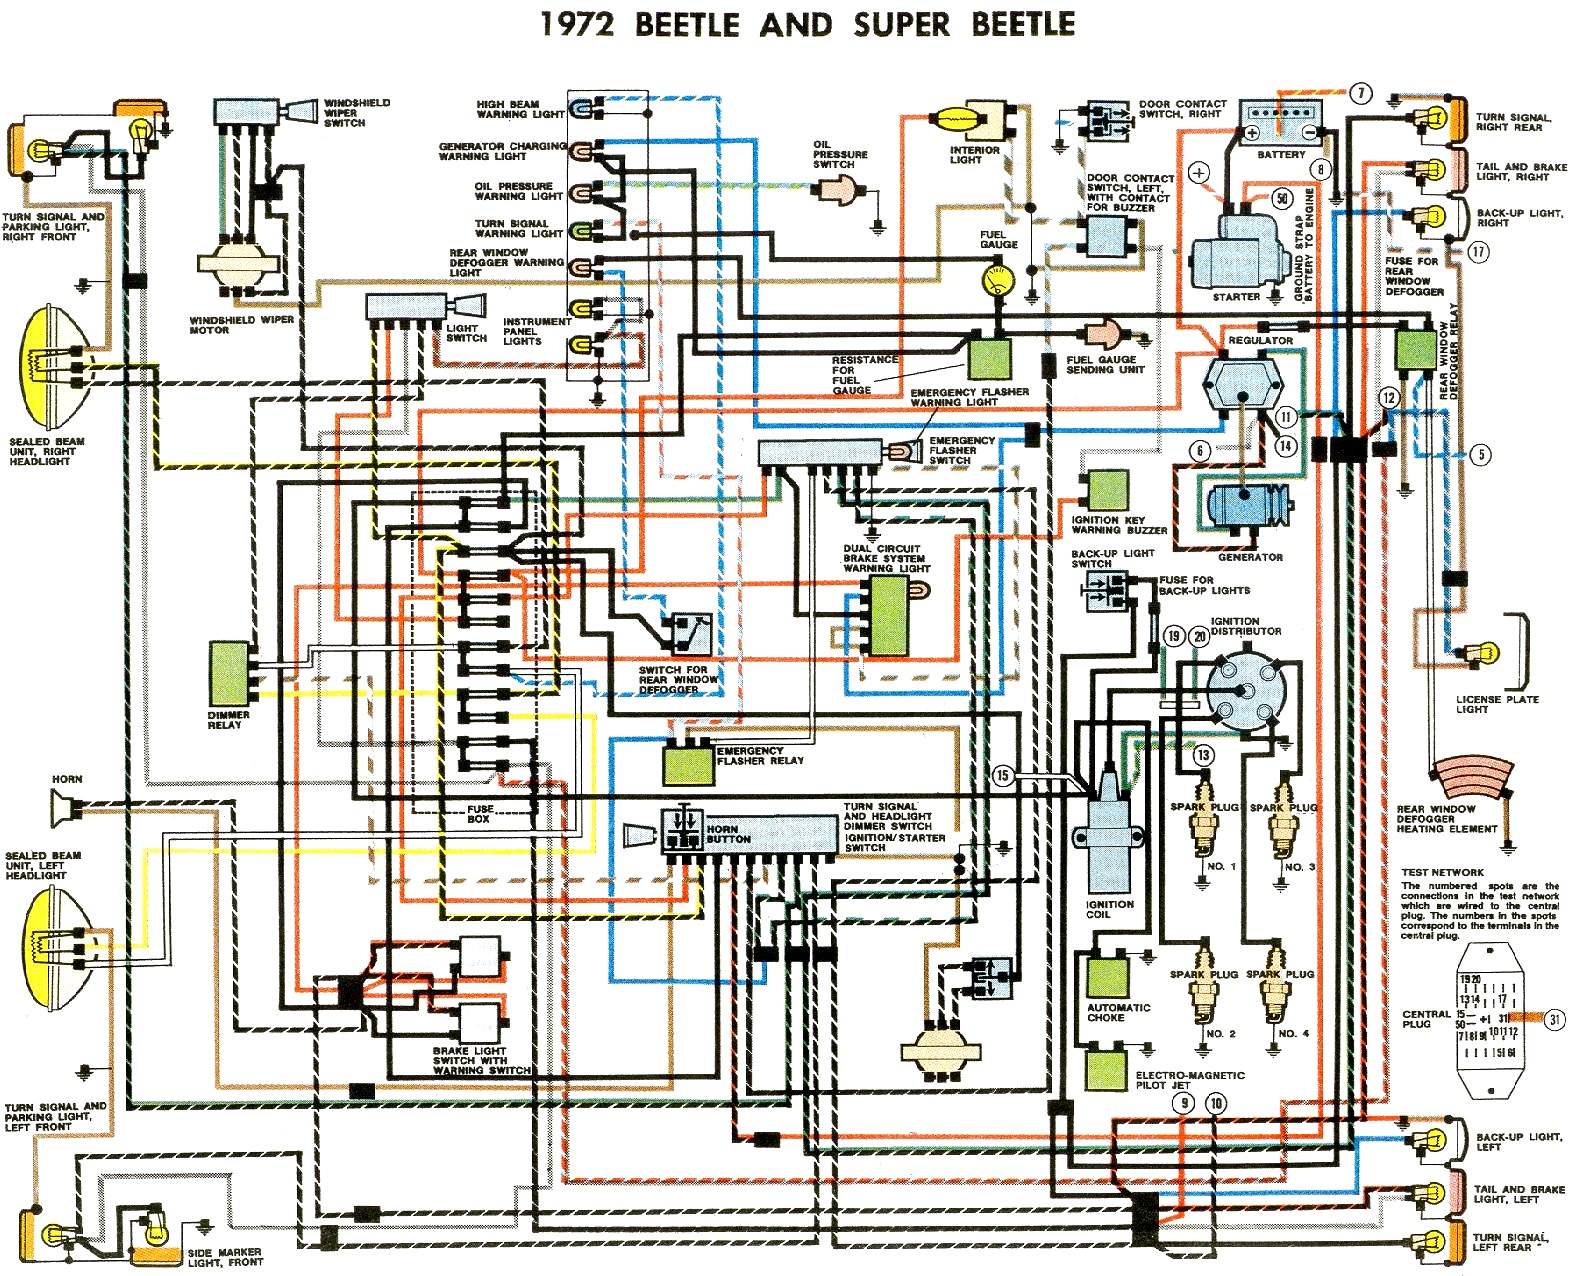 bug_72 1972 beetle wiring diagram thegoldenbug com 1973 vw wiring diagram at nearapp.co